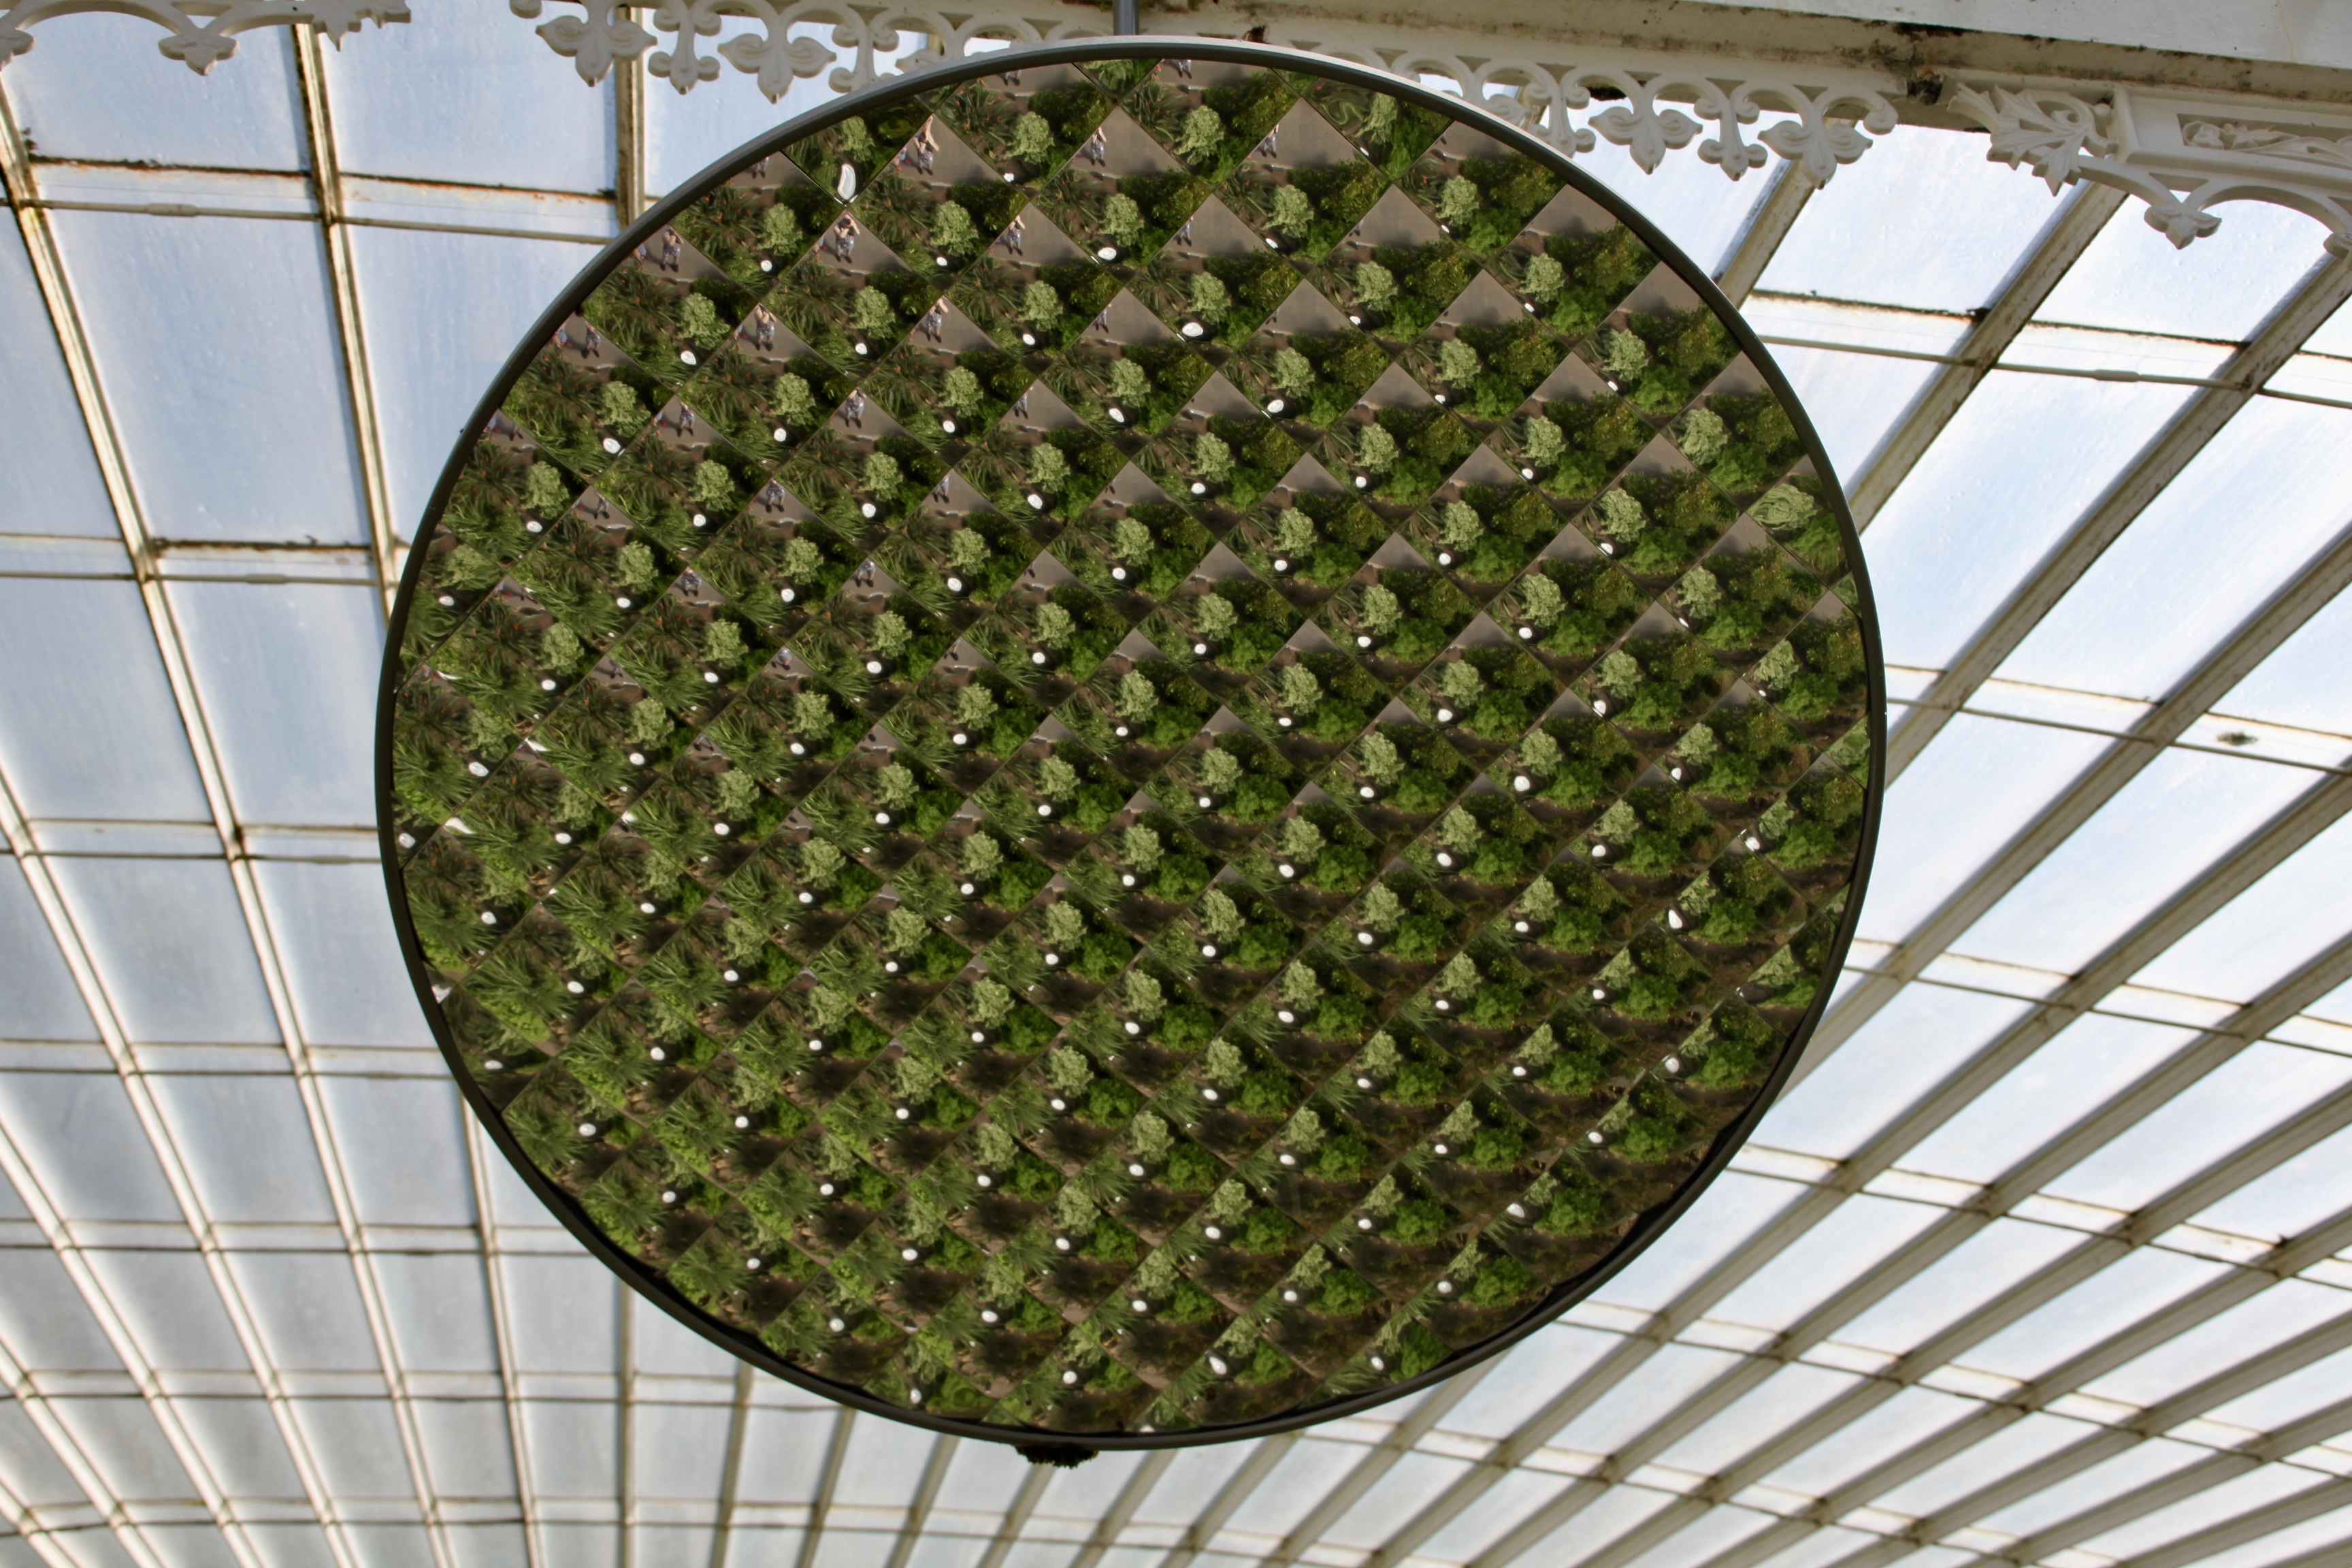 Large multi faceted mirror in Kibble Palace, Glasgow Botanic Gardens, by Jez Braithwaite